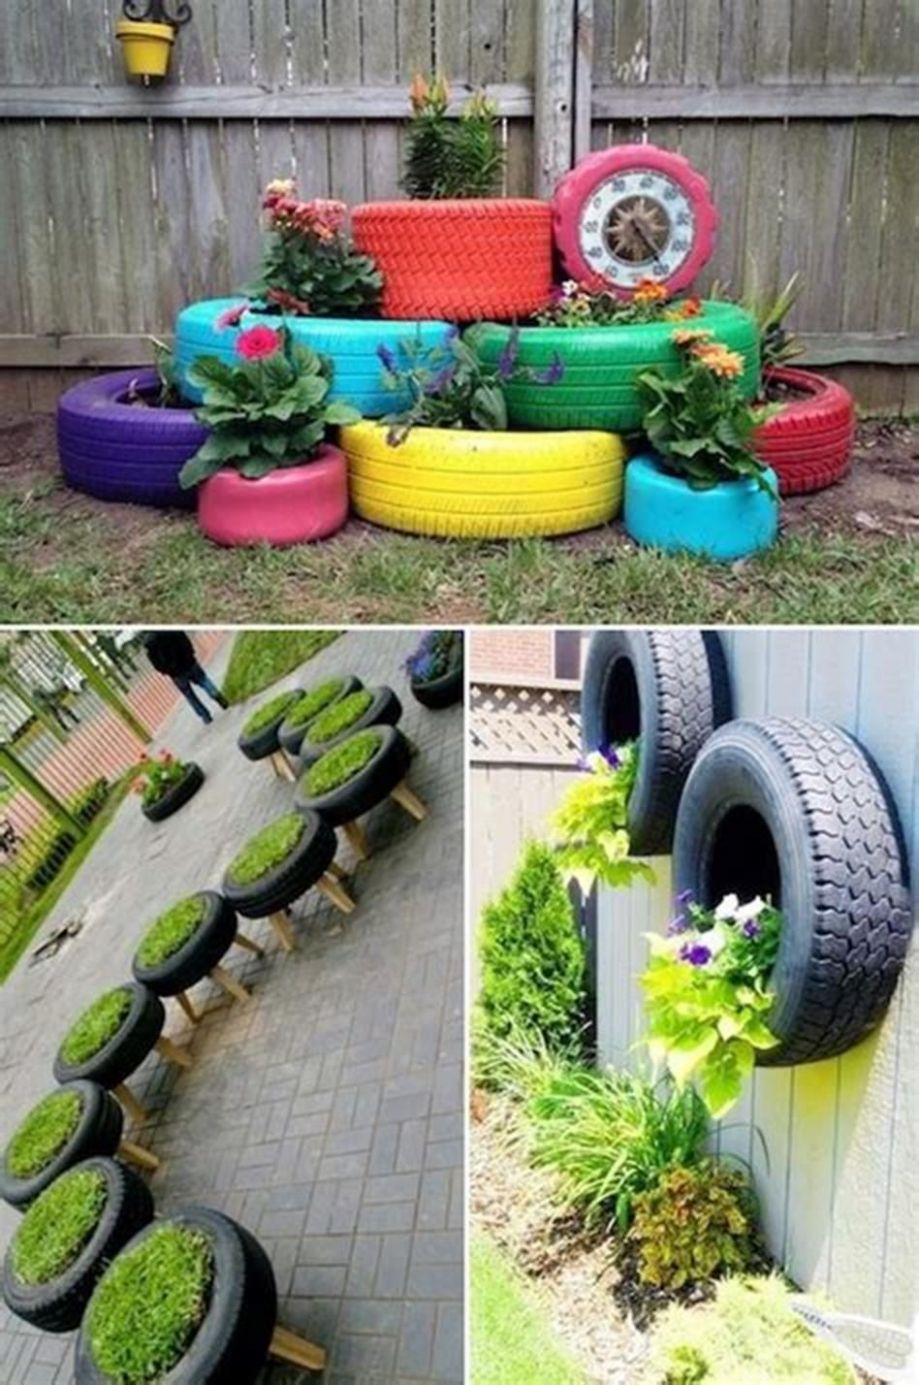 10 Creative DIY Tire Container Gardening Ideas | Garden projects ..